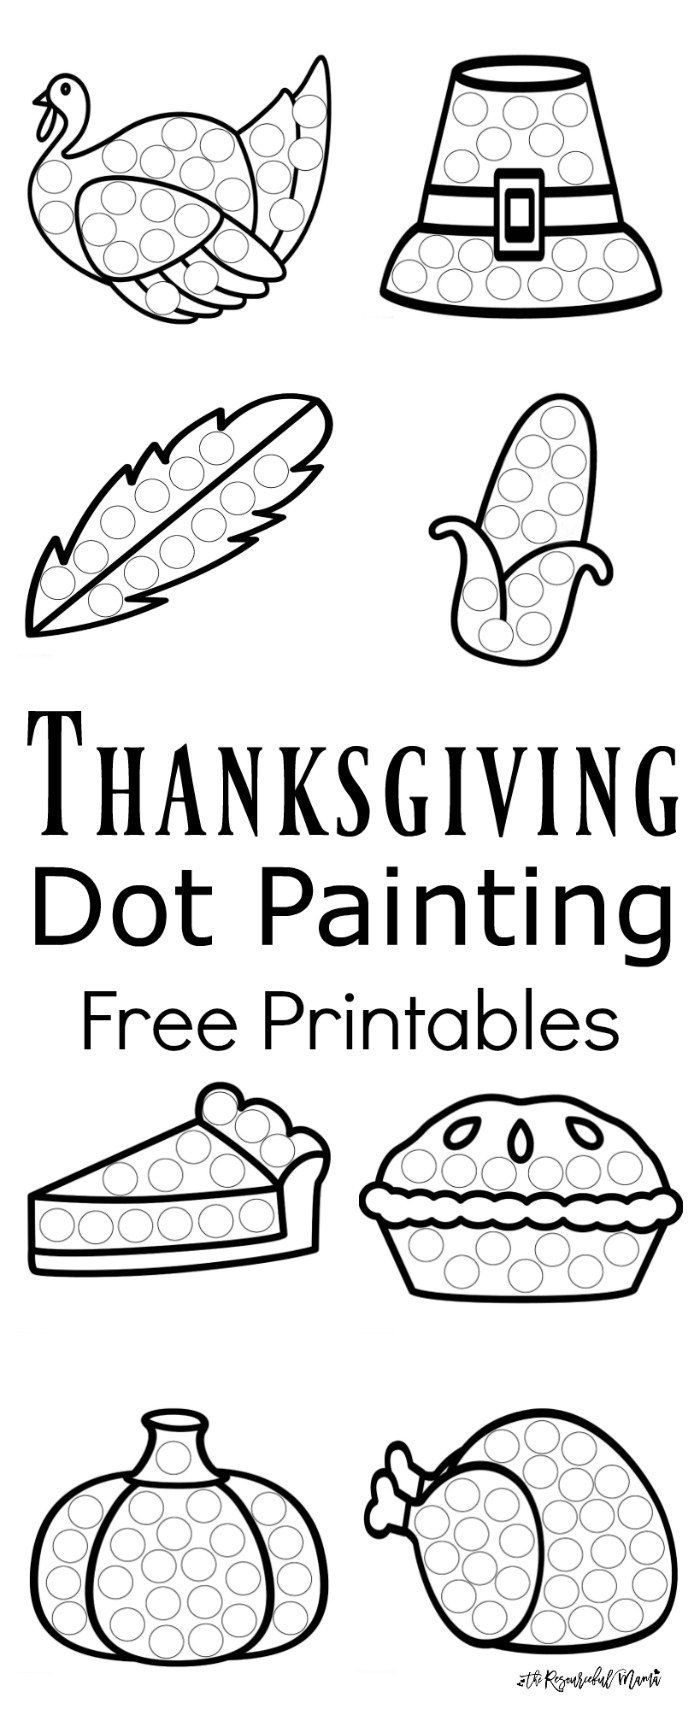 Thanksgiving Dot Painting {Free Printables} | Best Of Kids And - Thanksgiving Games Printable Free